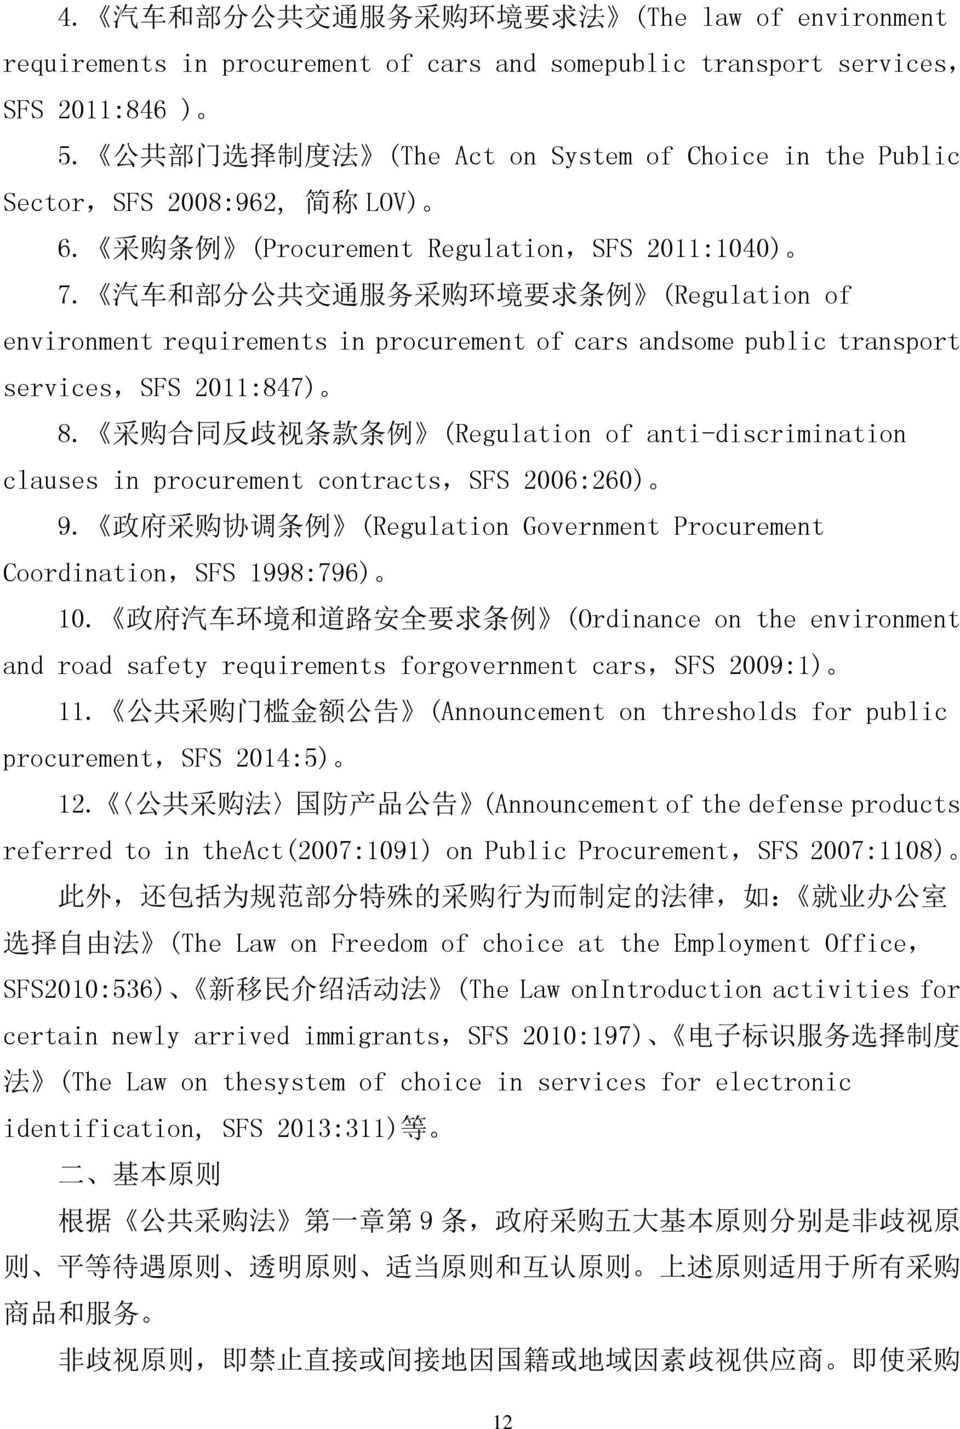 汽 车 和 部 分 公 共 交 通 服 务 采 购 环 境 要 求 条 例 (Regulation of environment requirements in procurement of cars andsome public transport services,sfs 2011:847) 8.